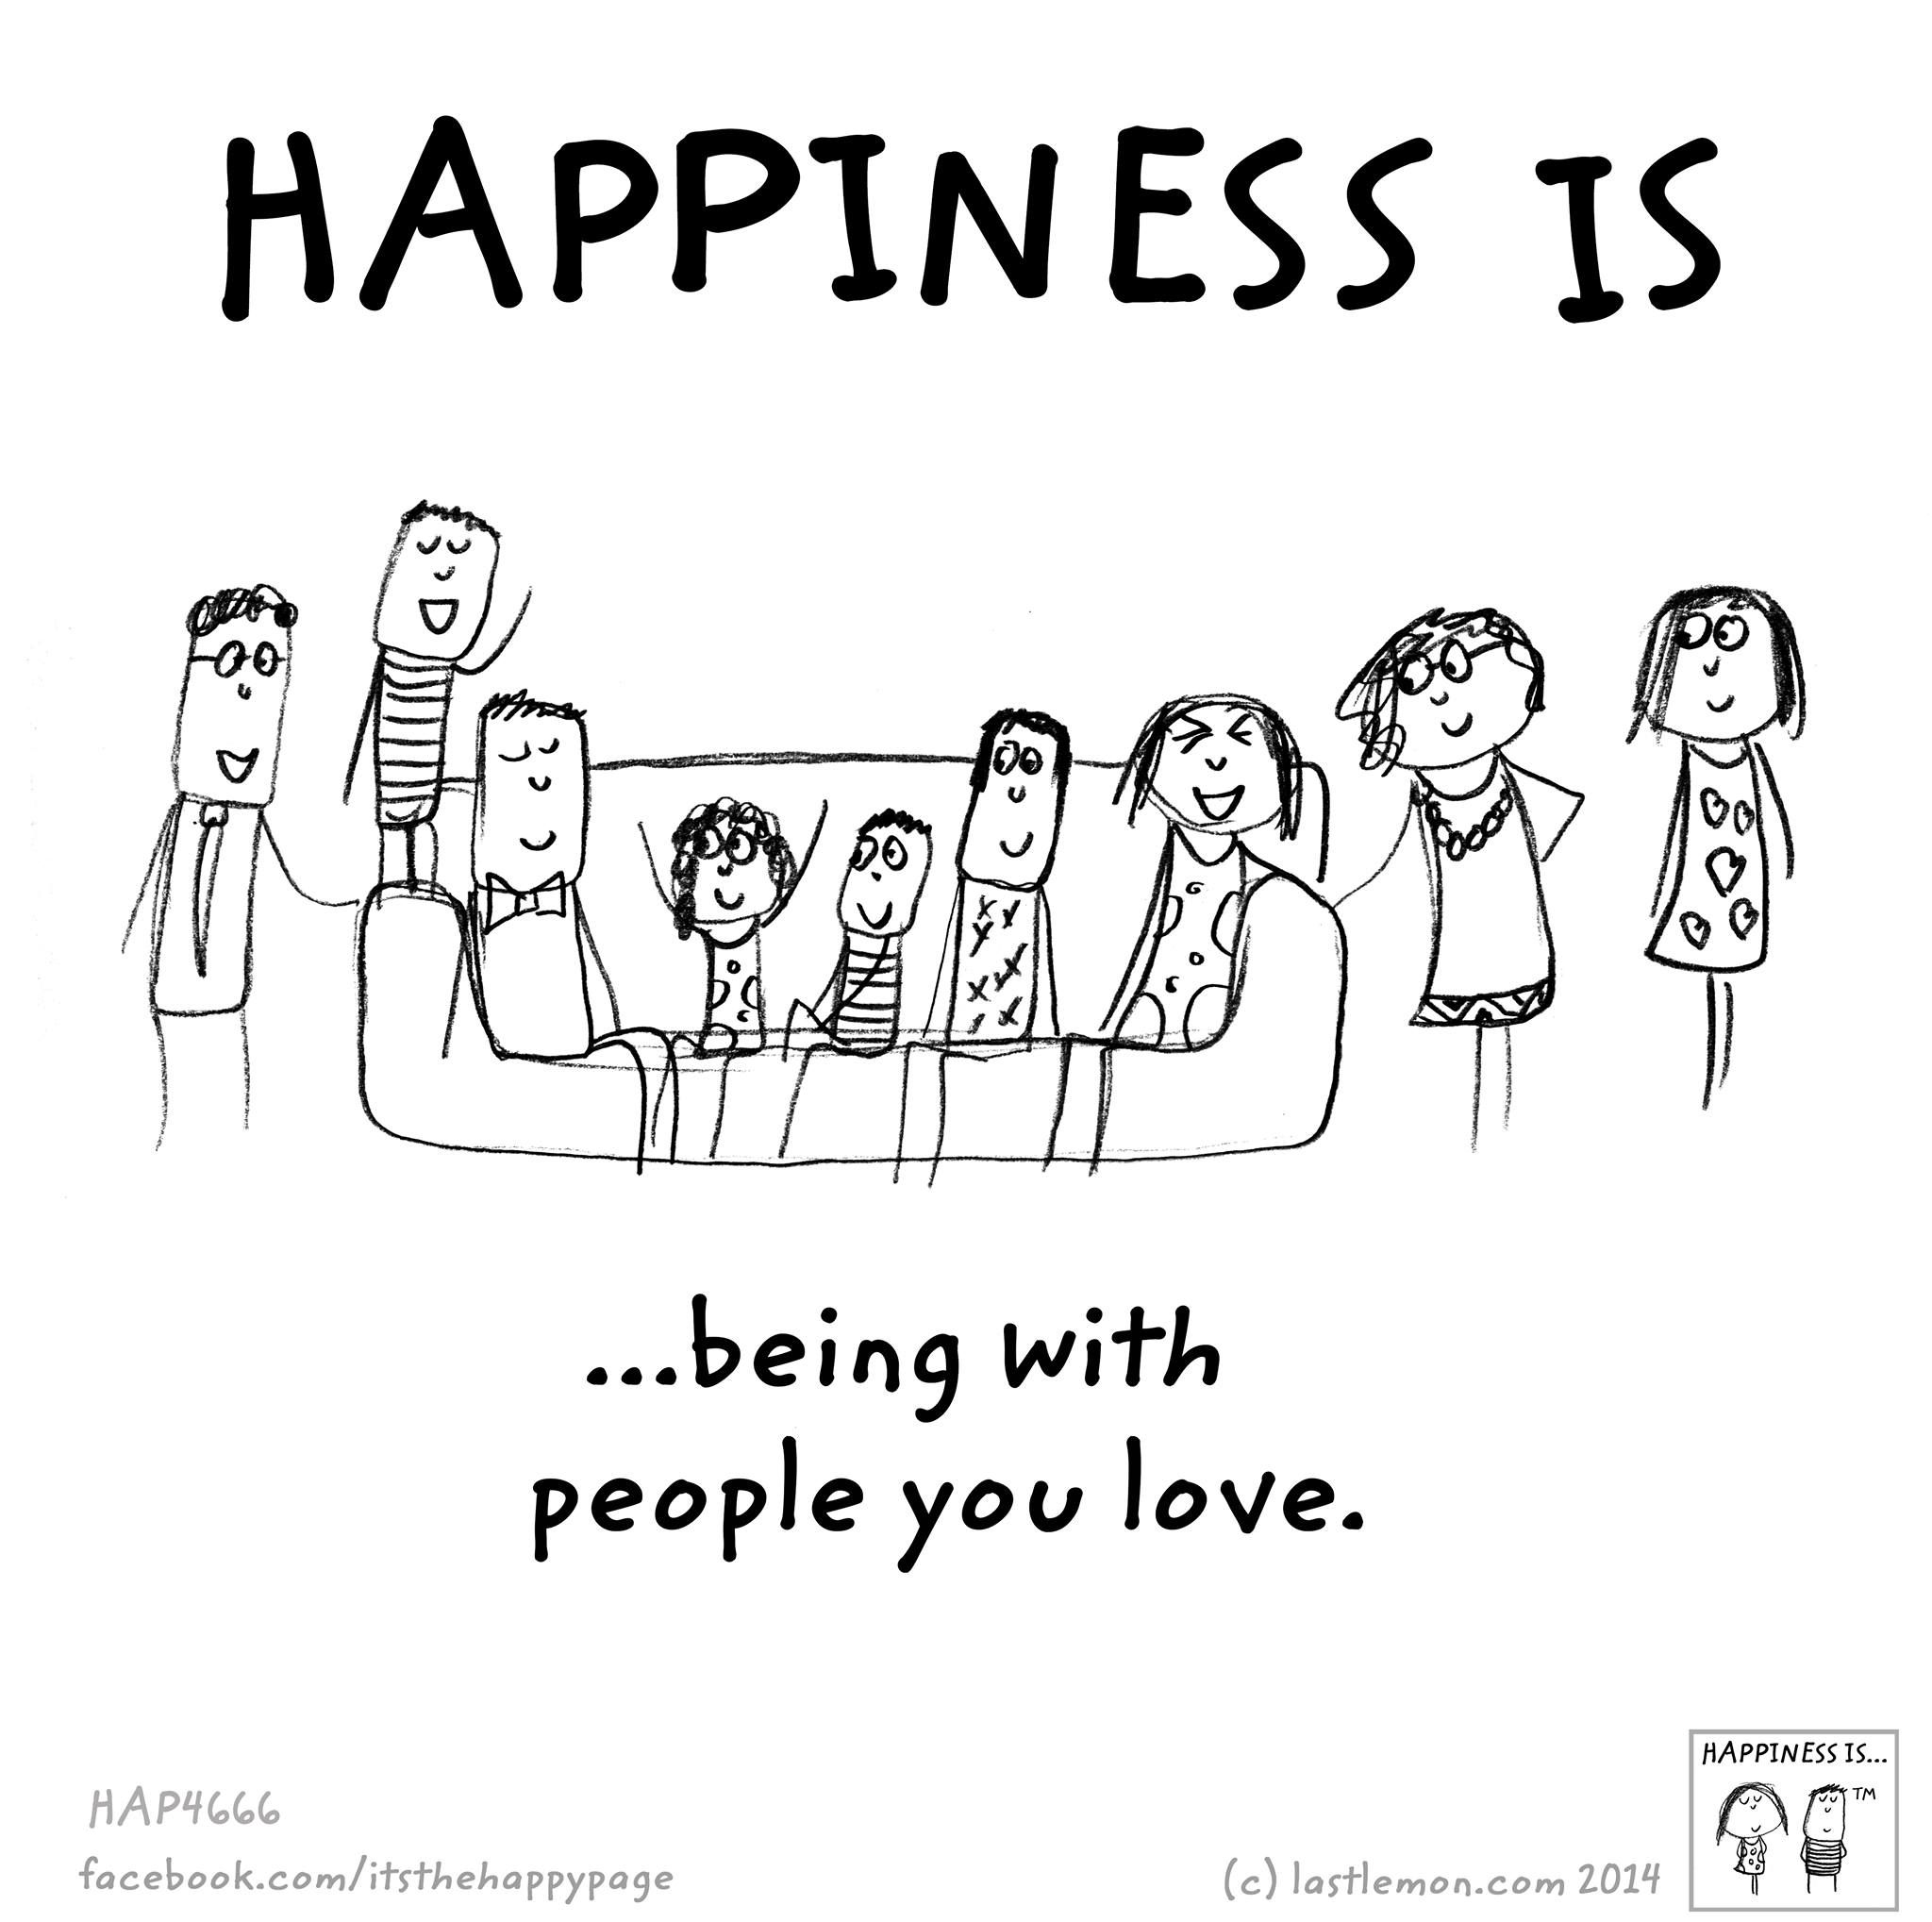 Happiness is being with people you love.